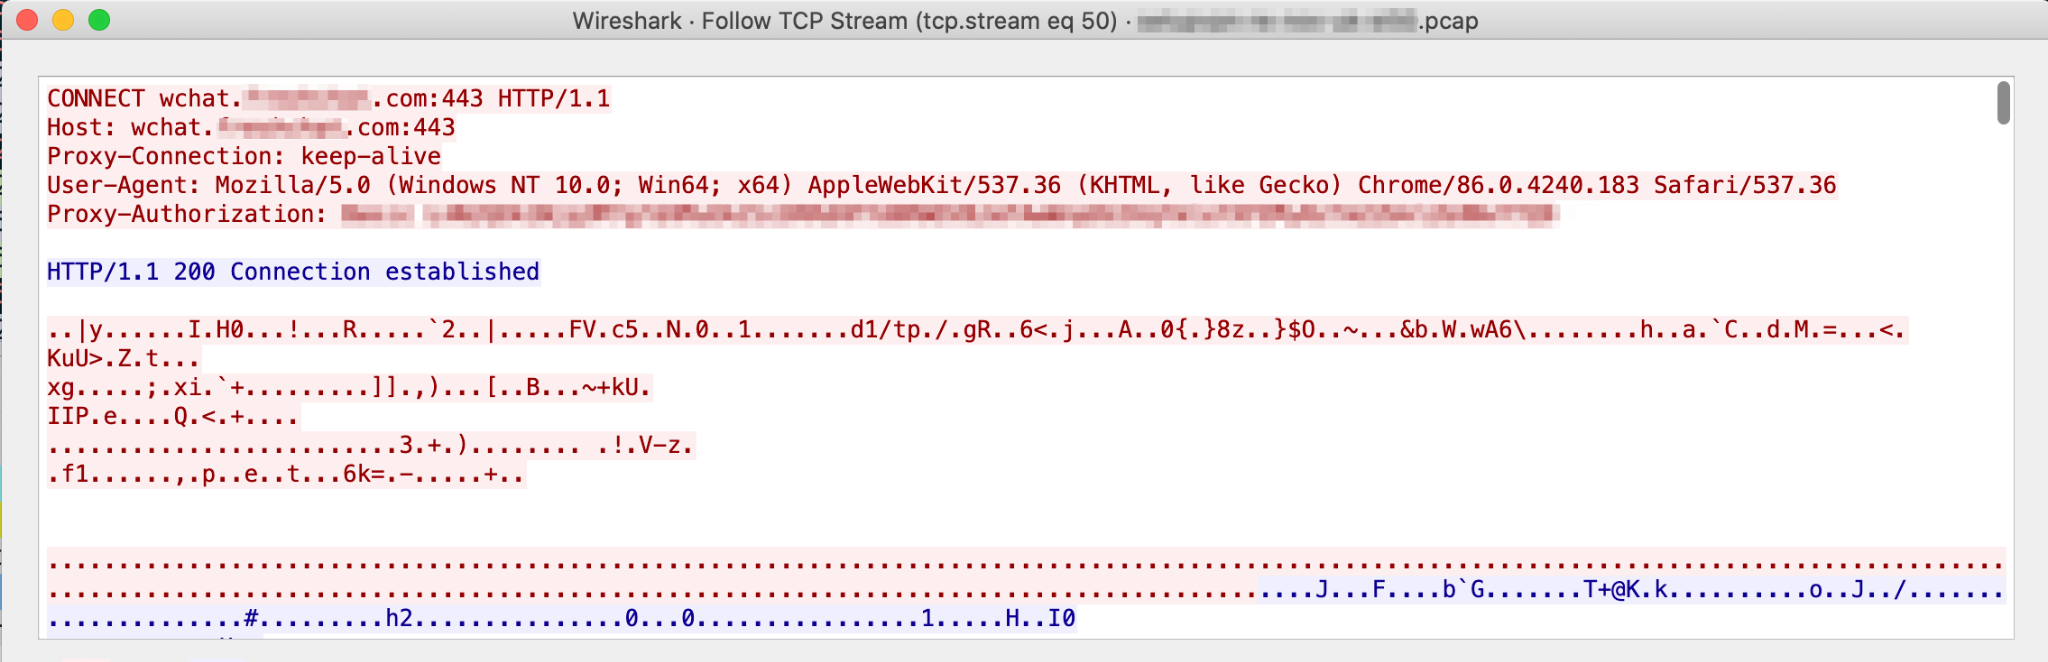 The HTTP proxy-authorization header in SetupVPN, shown here, can present helpful information about the SetupVPN app.